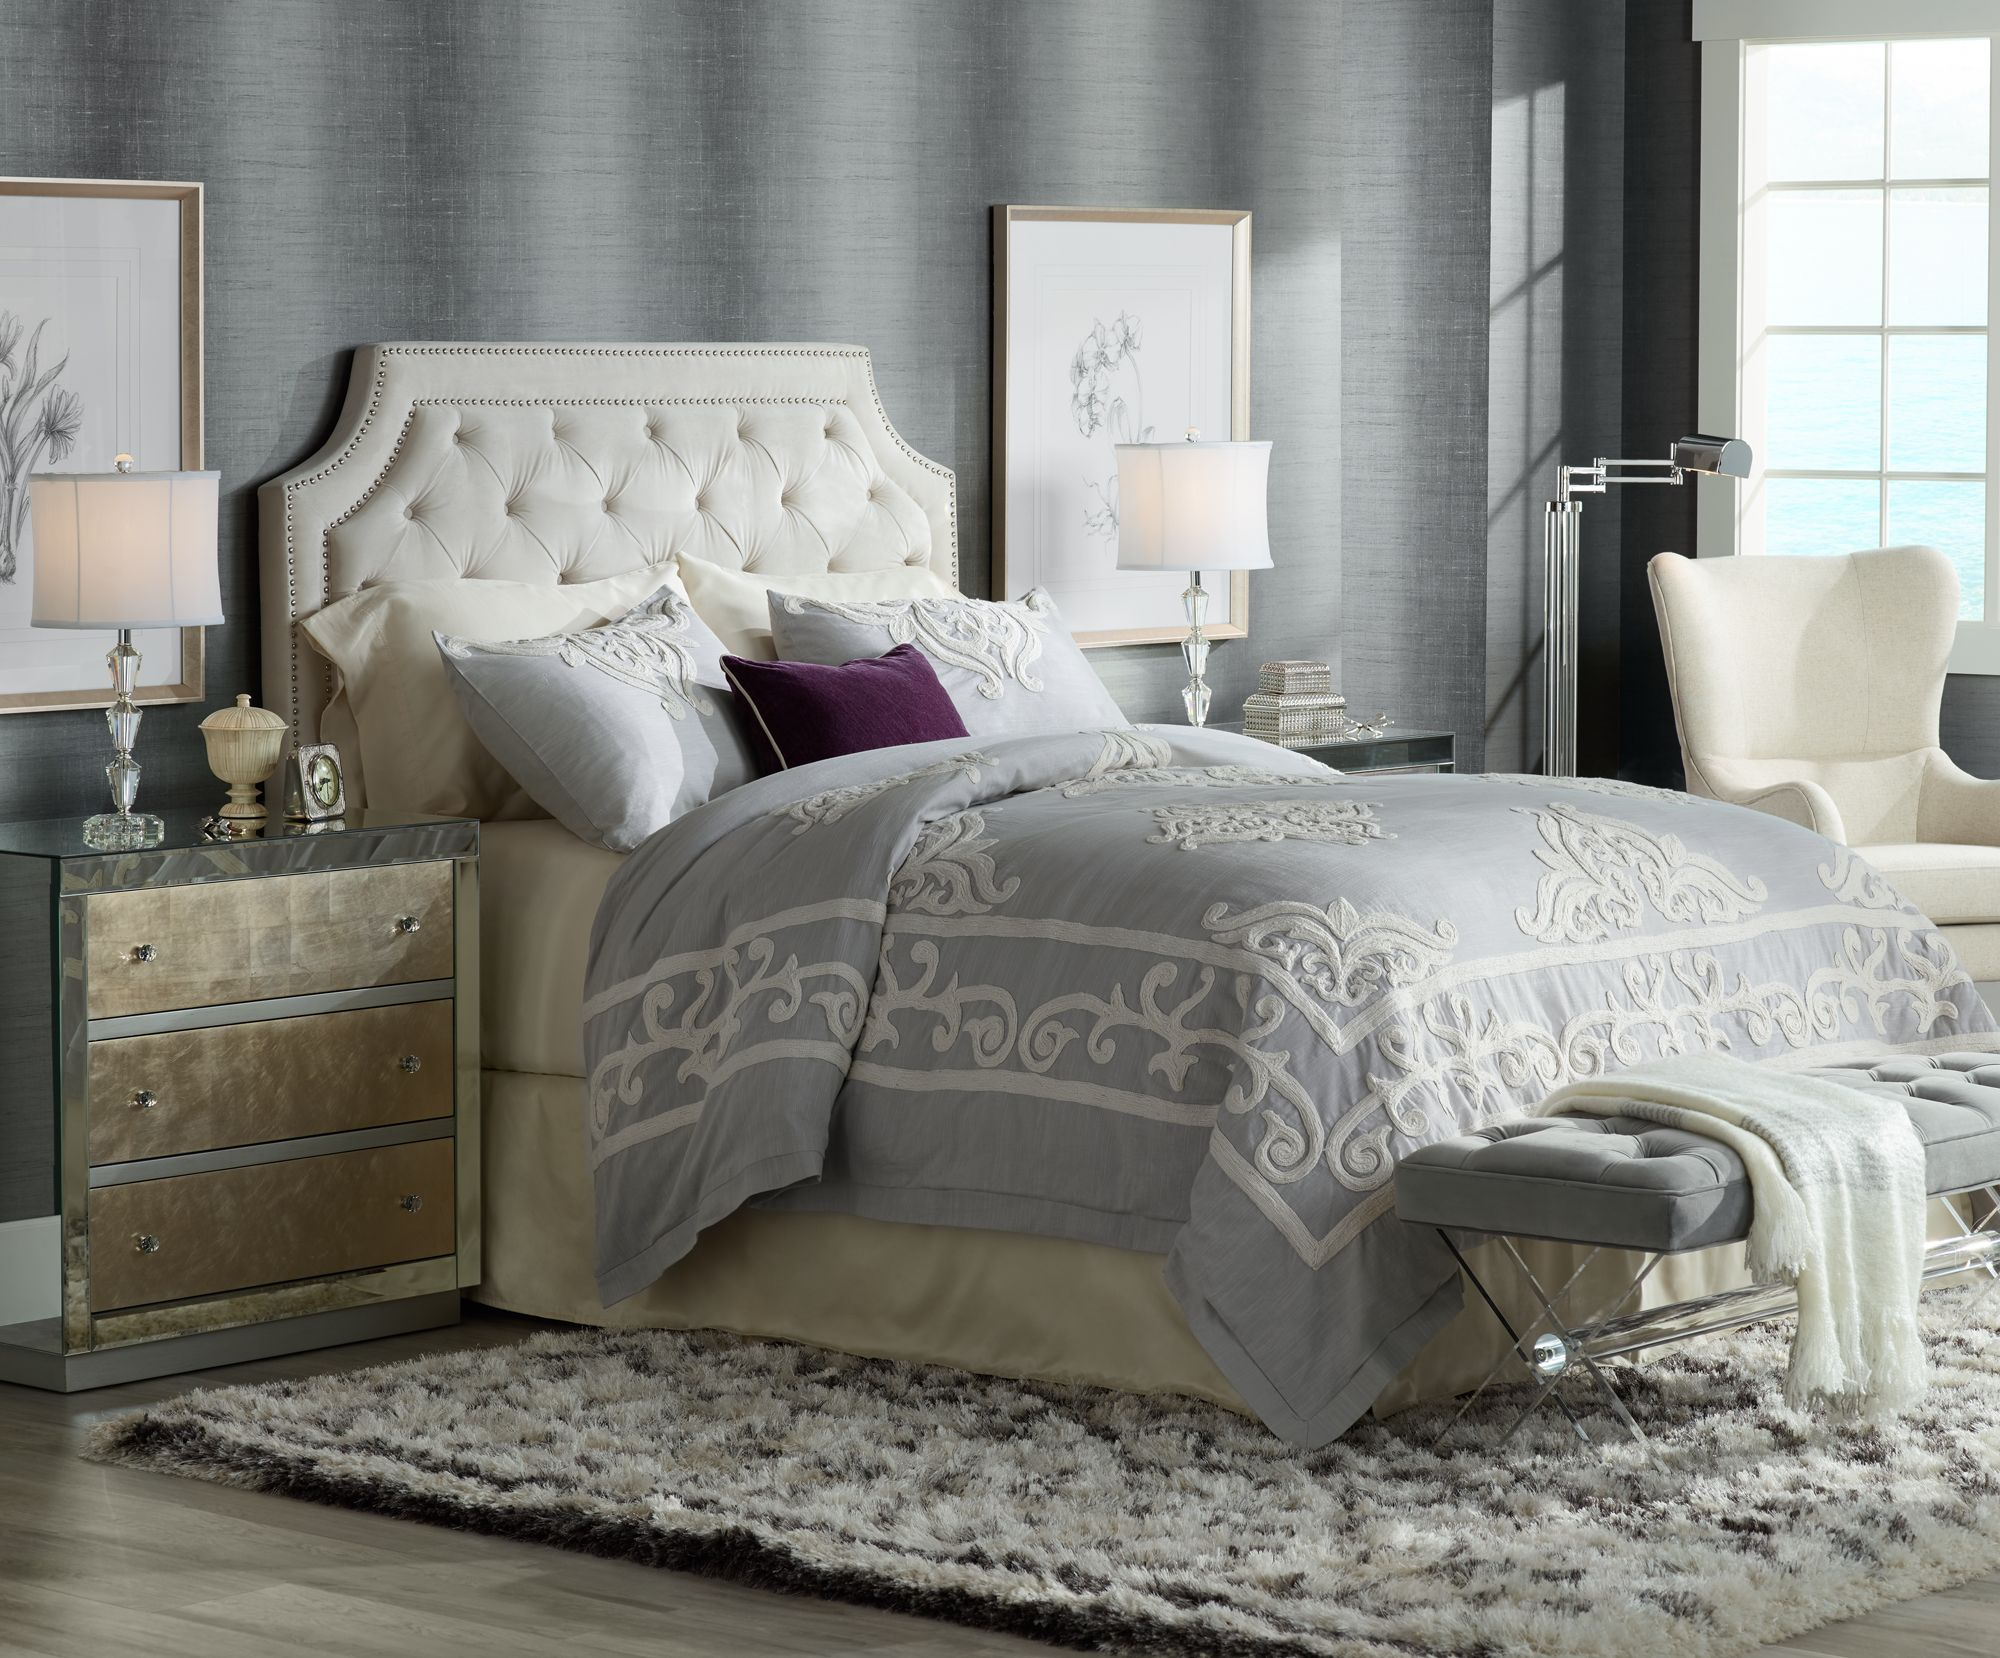 crystal table lamps for bedroom made for sleeping in, this bedroom has crystal table lamps on mirrored arflgpx